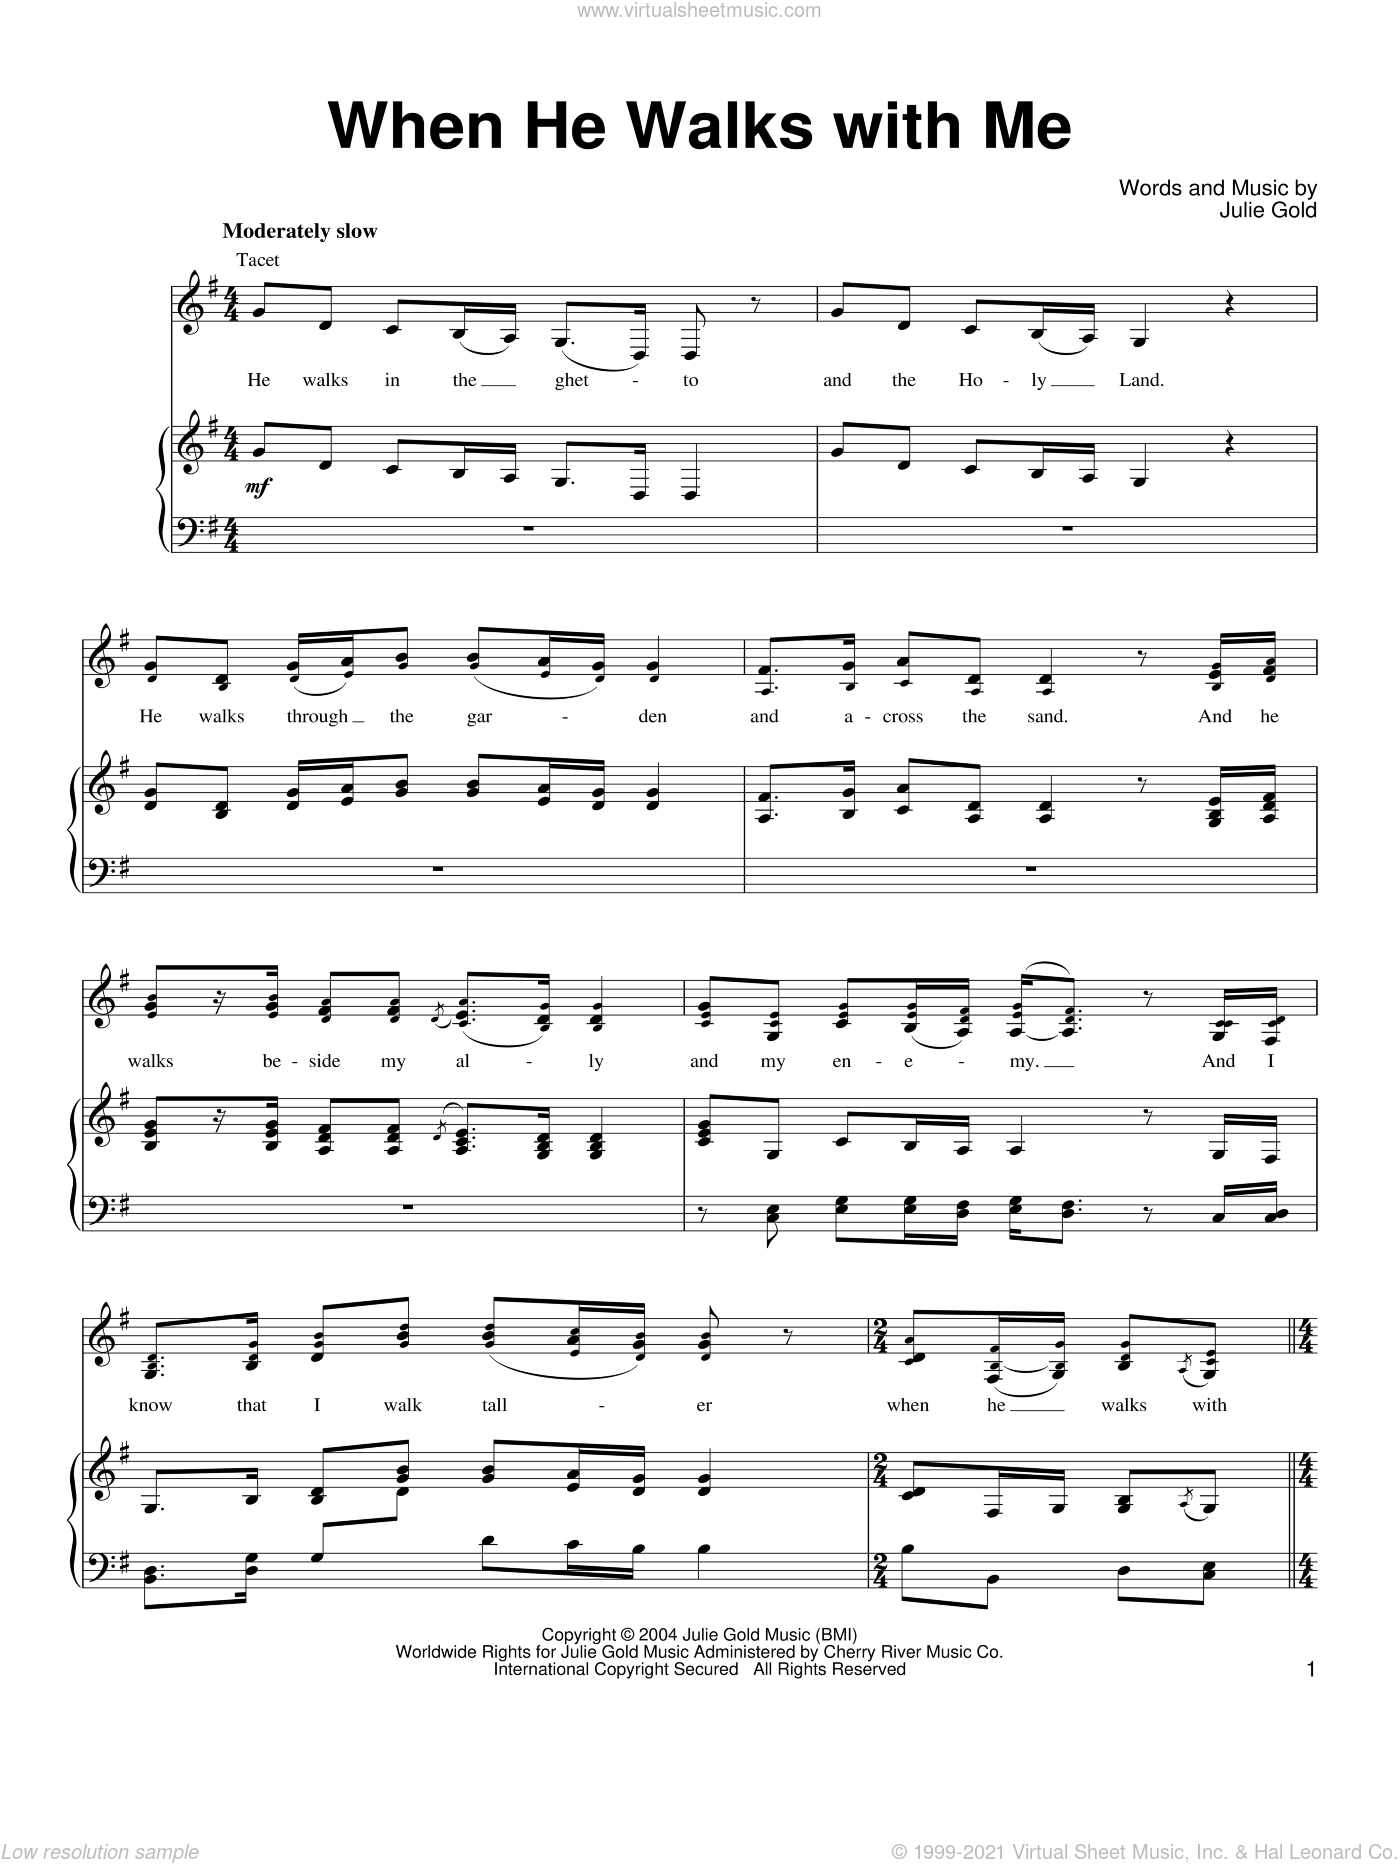 When He Walks With Me sheet music for voice, piano or guitar by Julie Gold, intermediate skill level